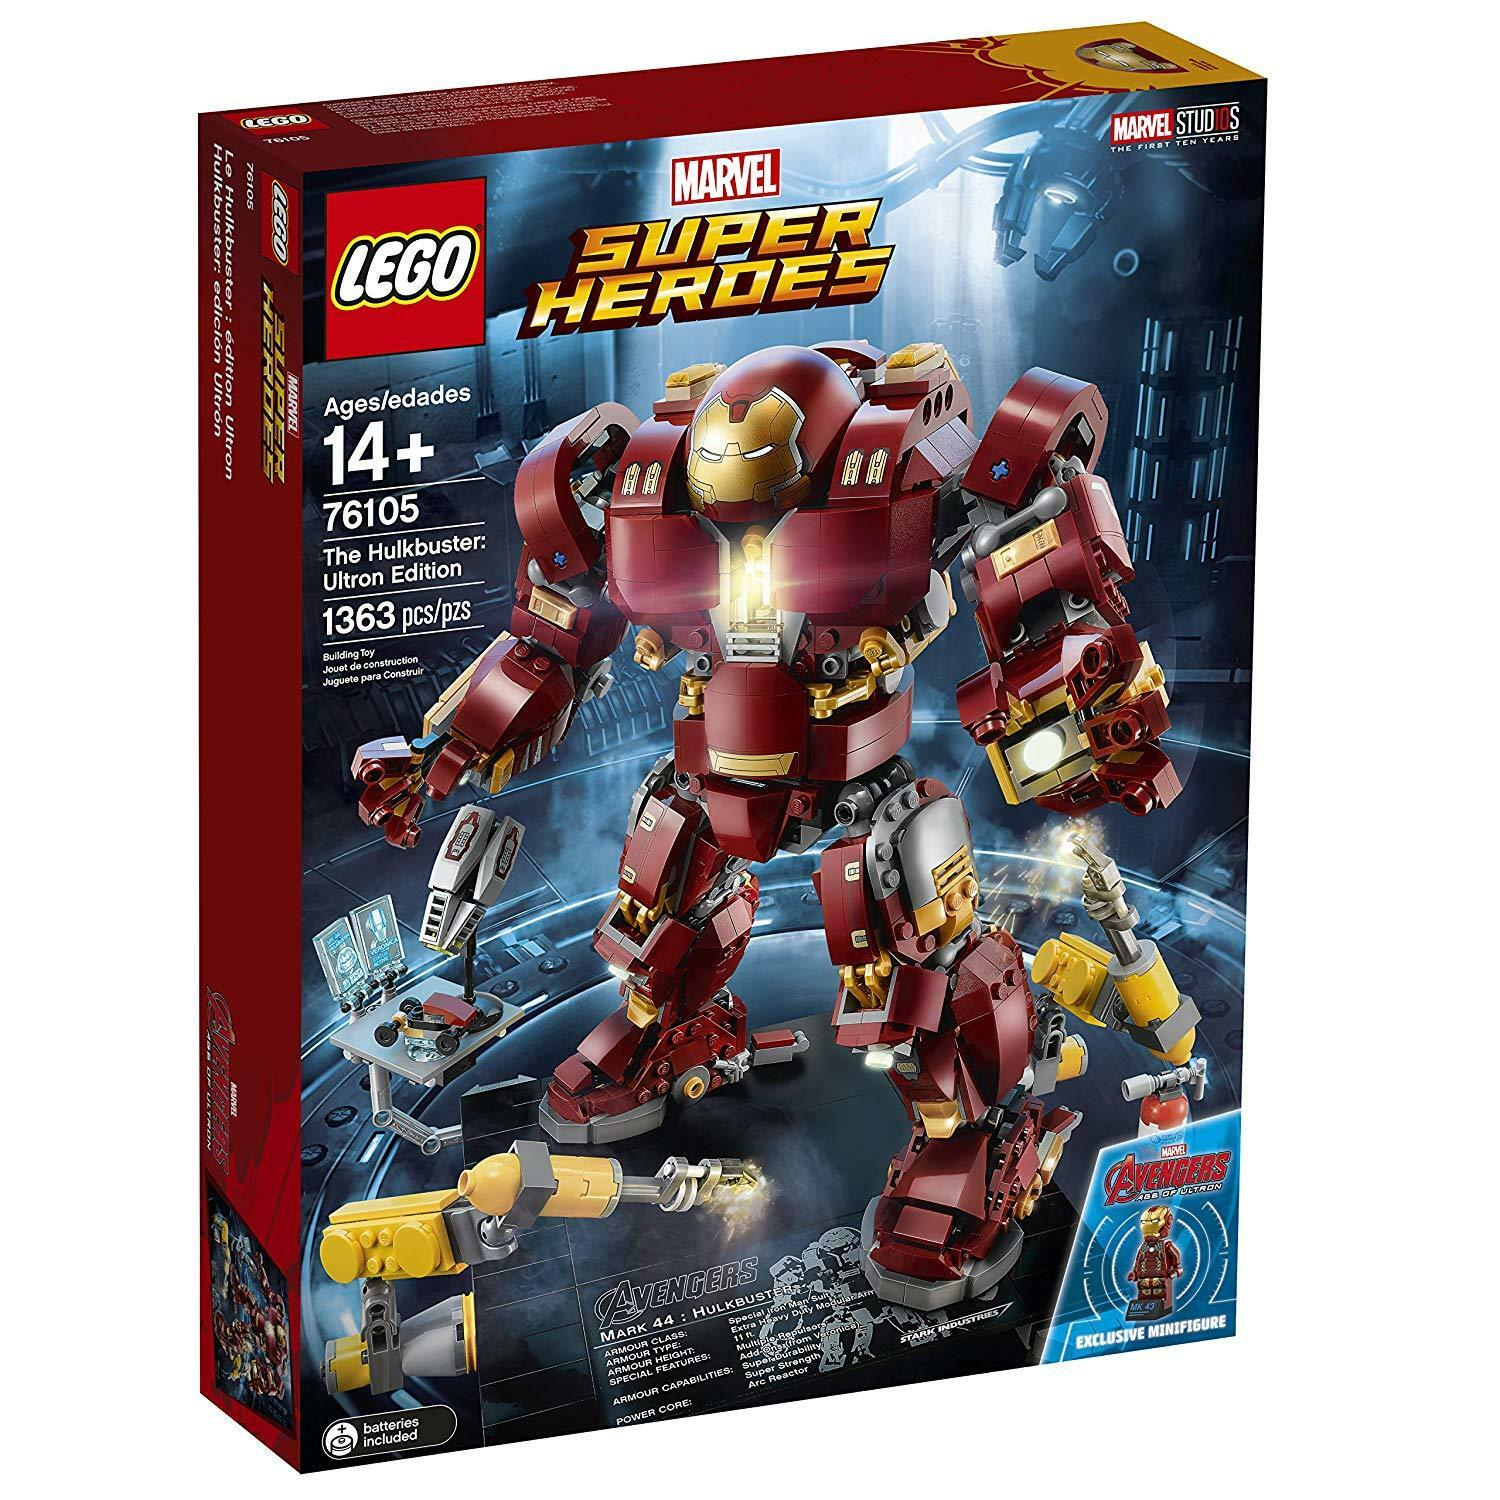 LEGO Super Heroes The Hulkbuster: Ultron Edition 76105 Building Kit